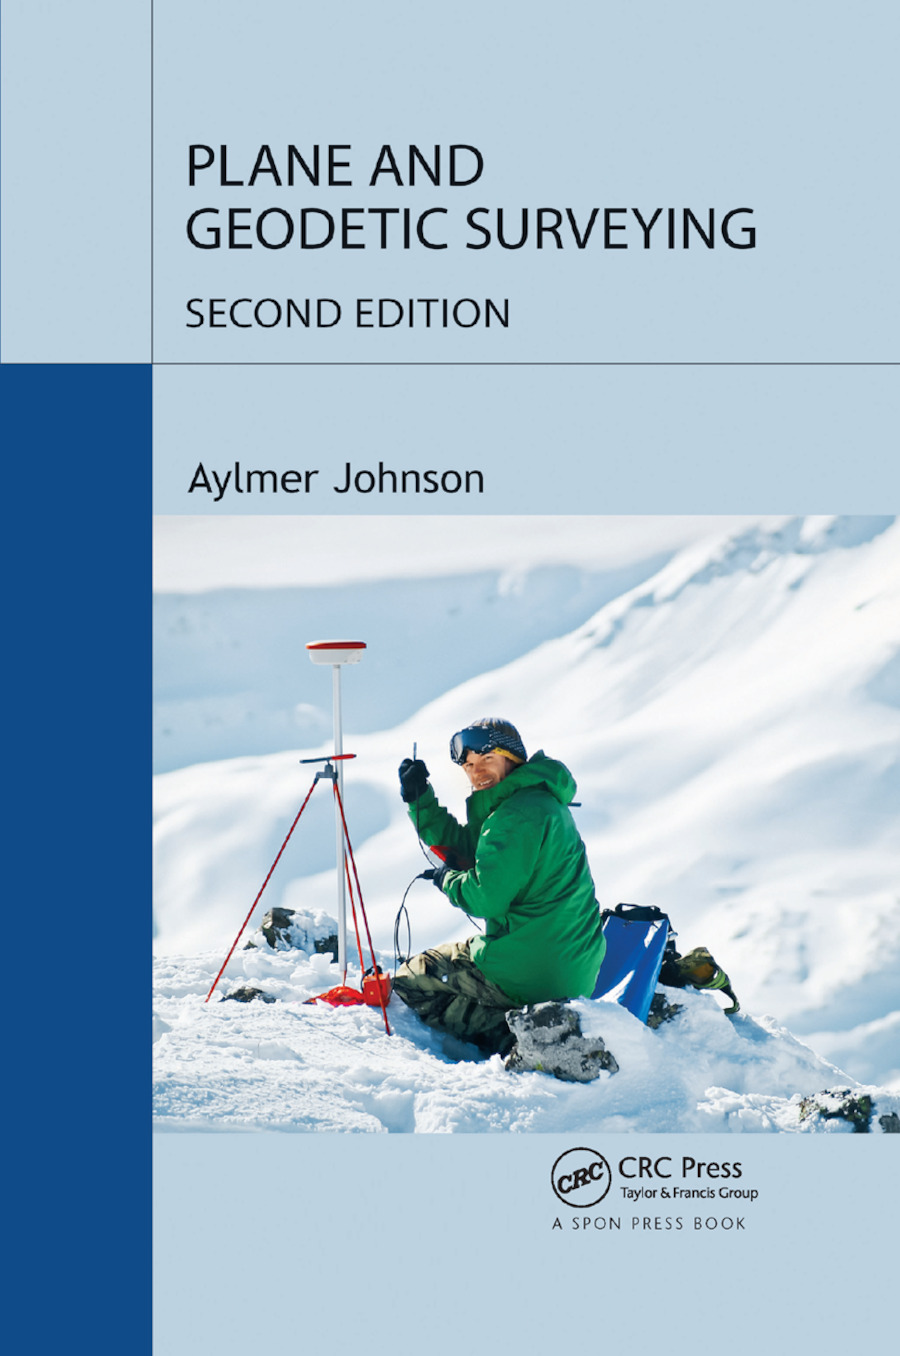 Plane and Geodetic Surveying book cover